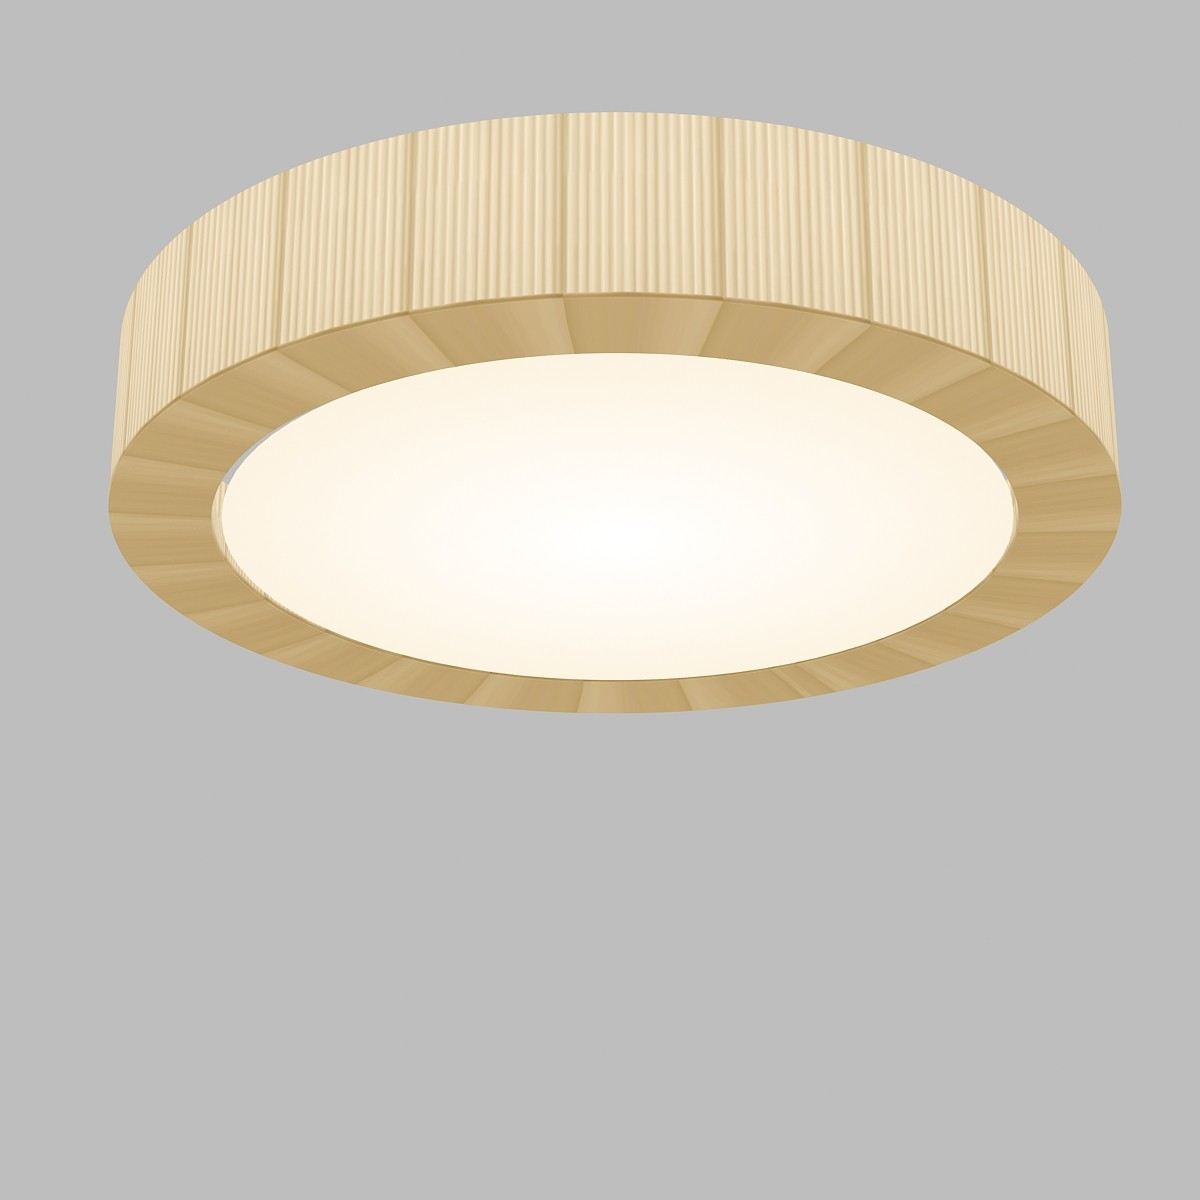 Urban - 37 ceiling lamp E27 46w Chrome-Cinta translucent Cream